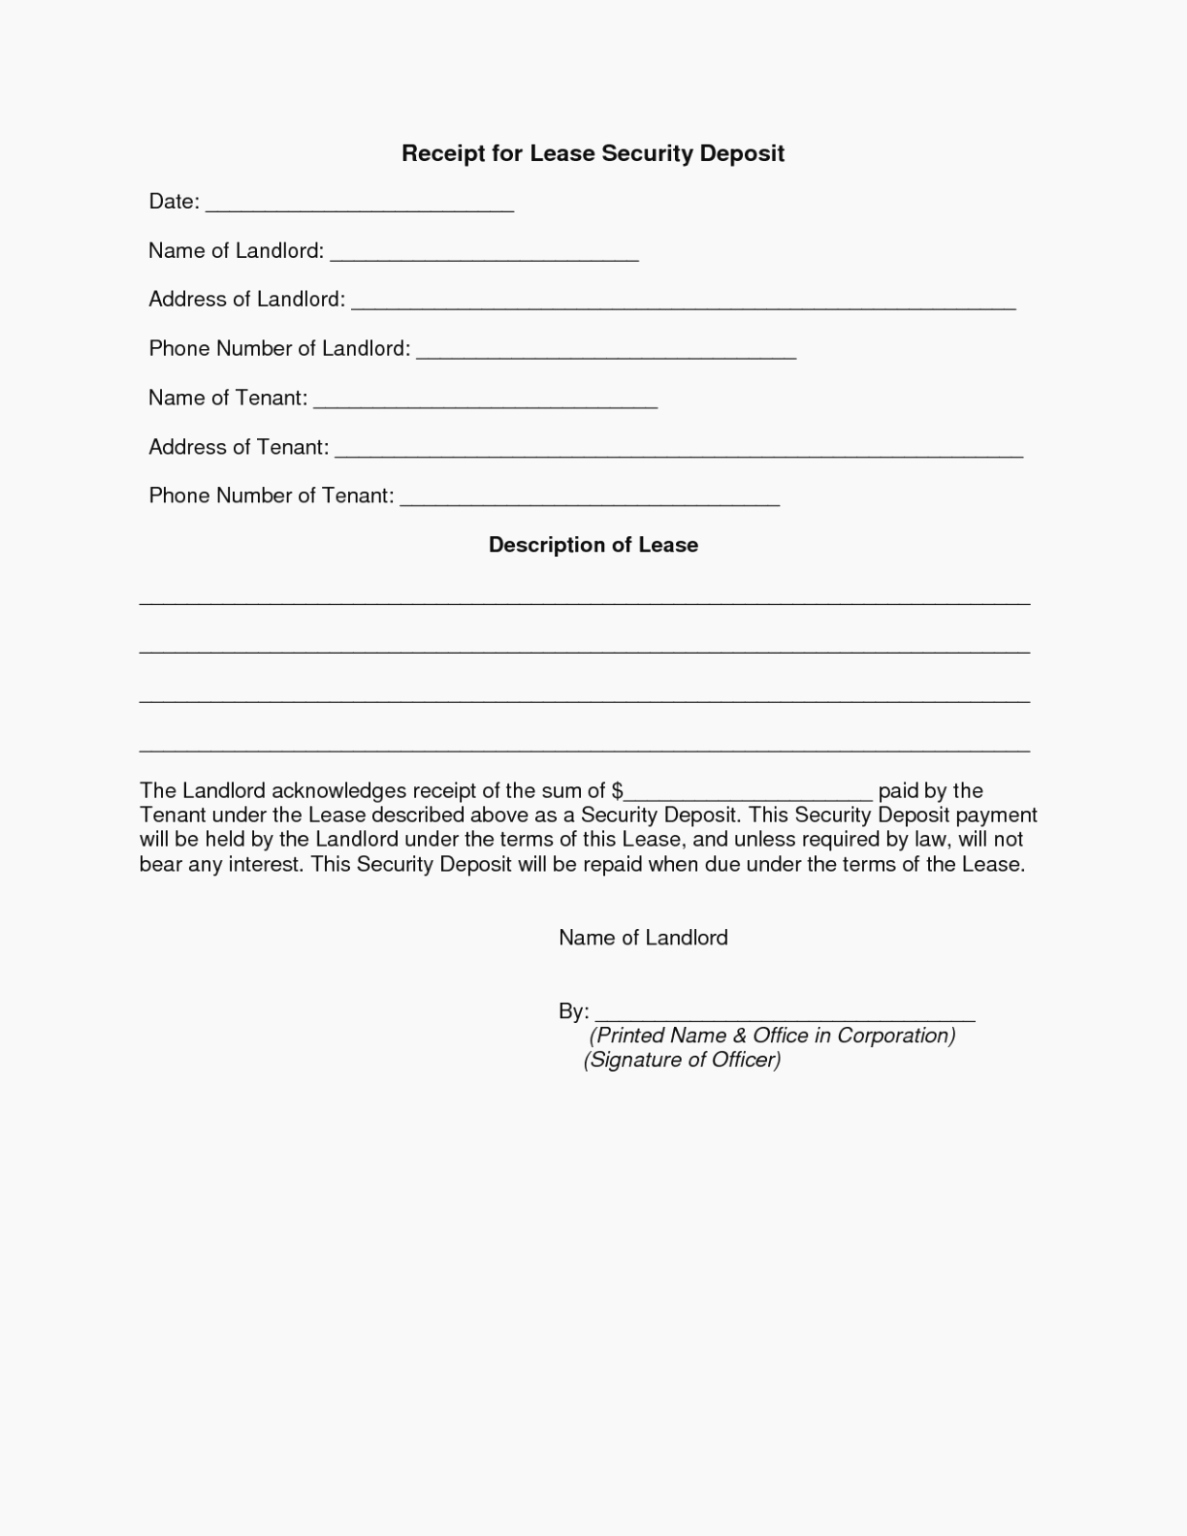 Security Deposit Receipt Templates Awesome Receipt Deposit Letter Examples Rental Template for